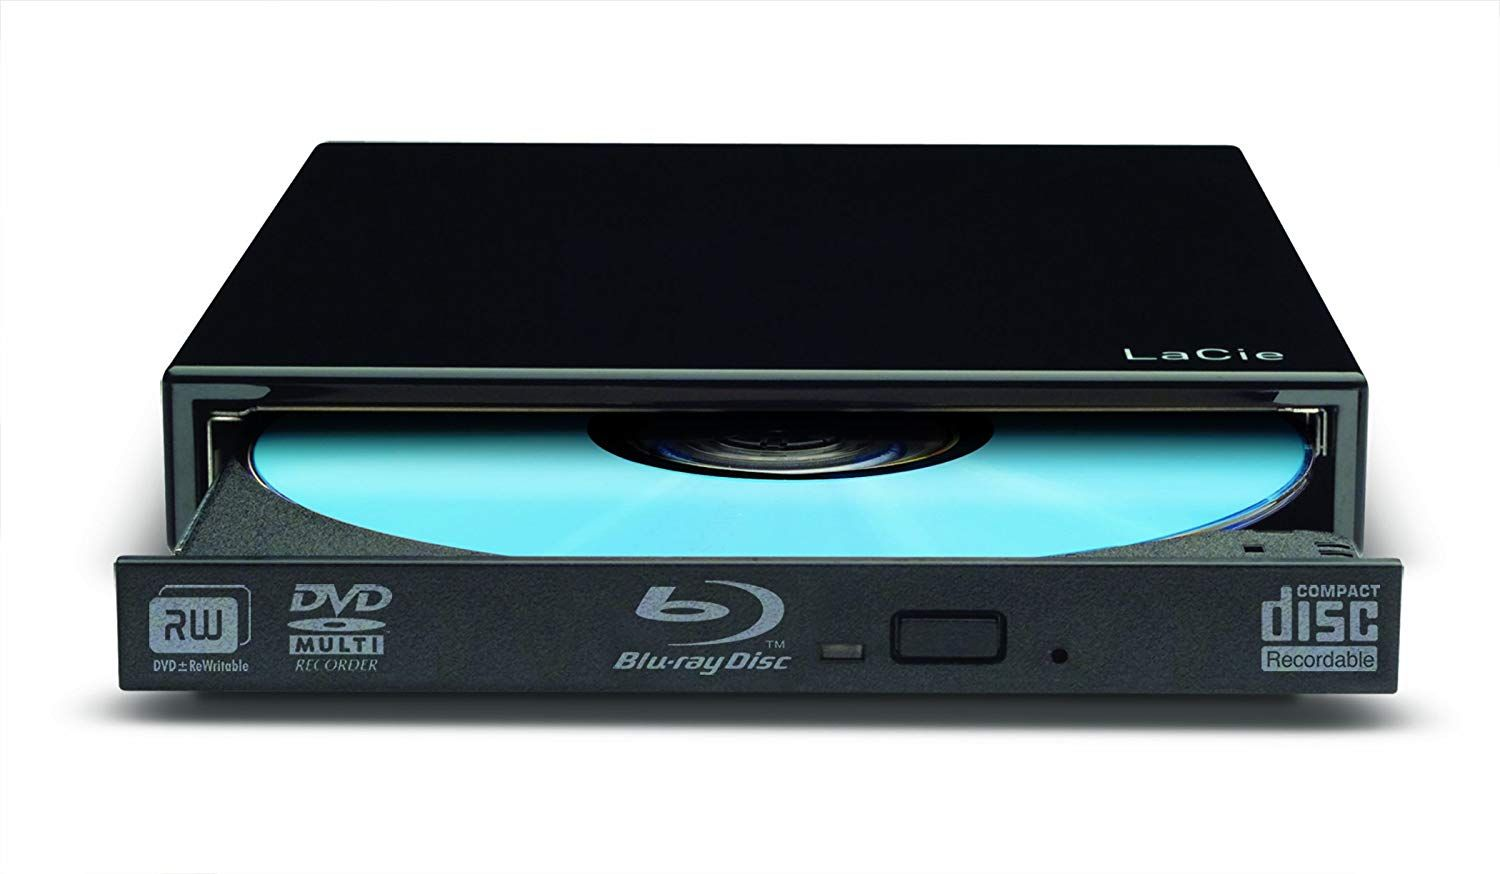 f3fbca8eb4f85b0f50644e3e7f26e51e - How To Get A Blu Ray Disc To Play